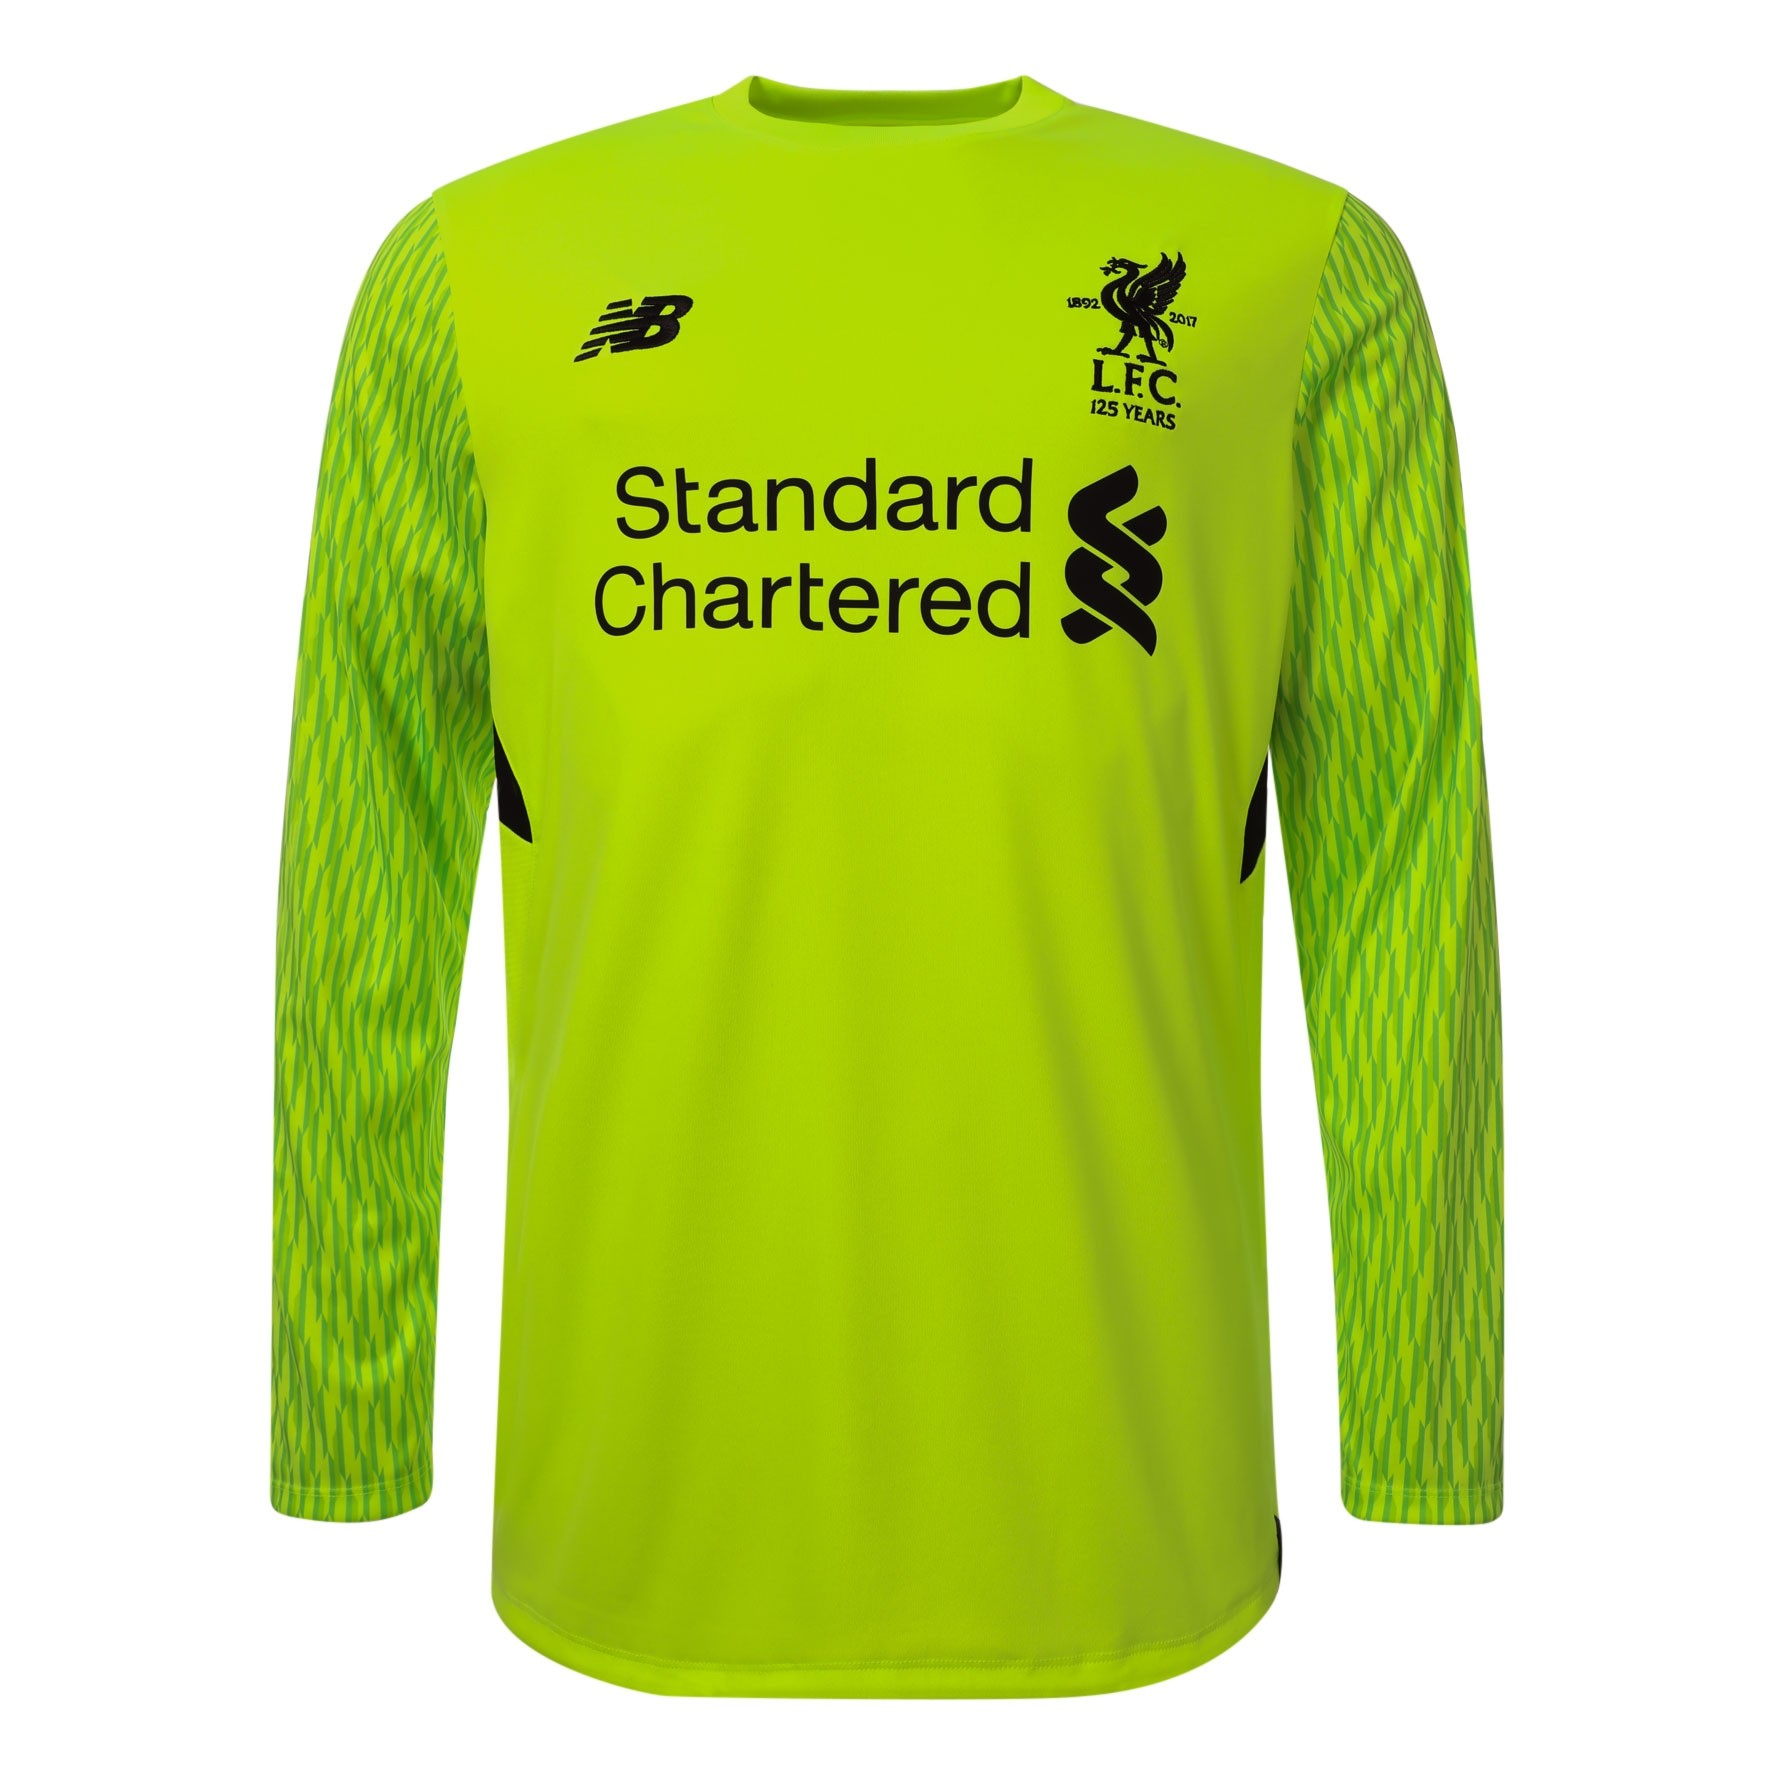 lfc-kids-replica-third-ls-goalkeeper-shirt-1718.jpg ebd5e1e27